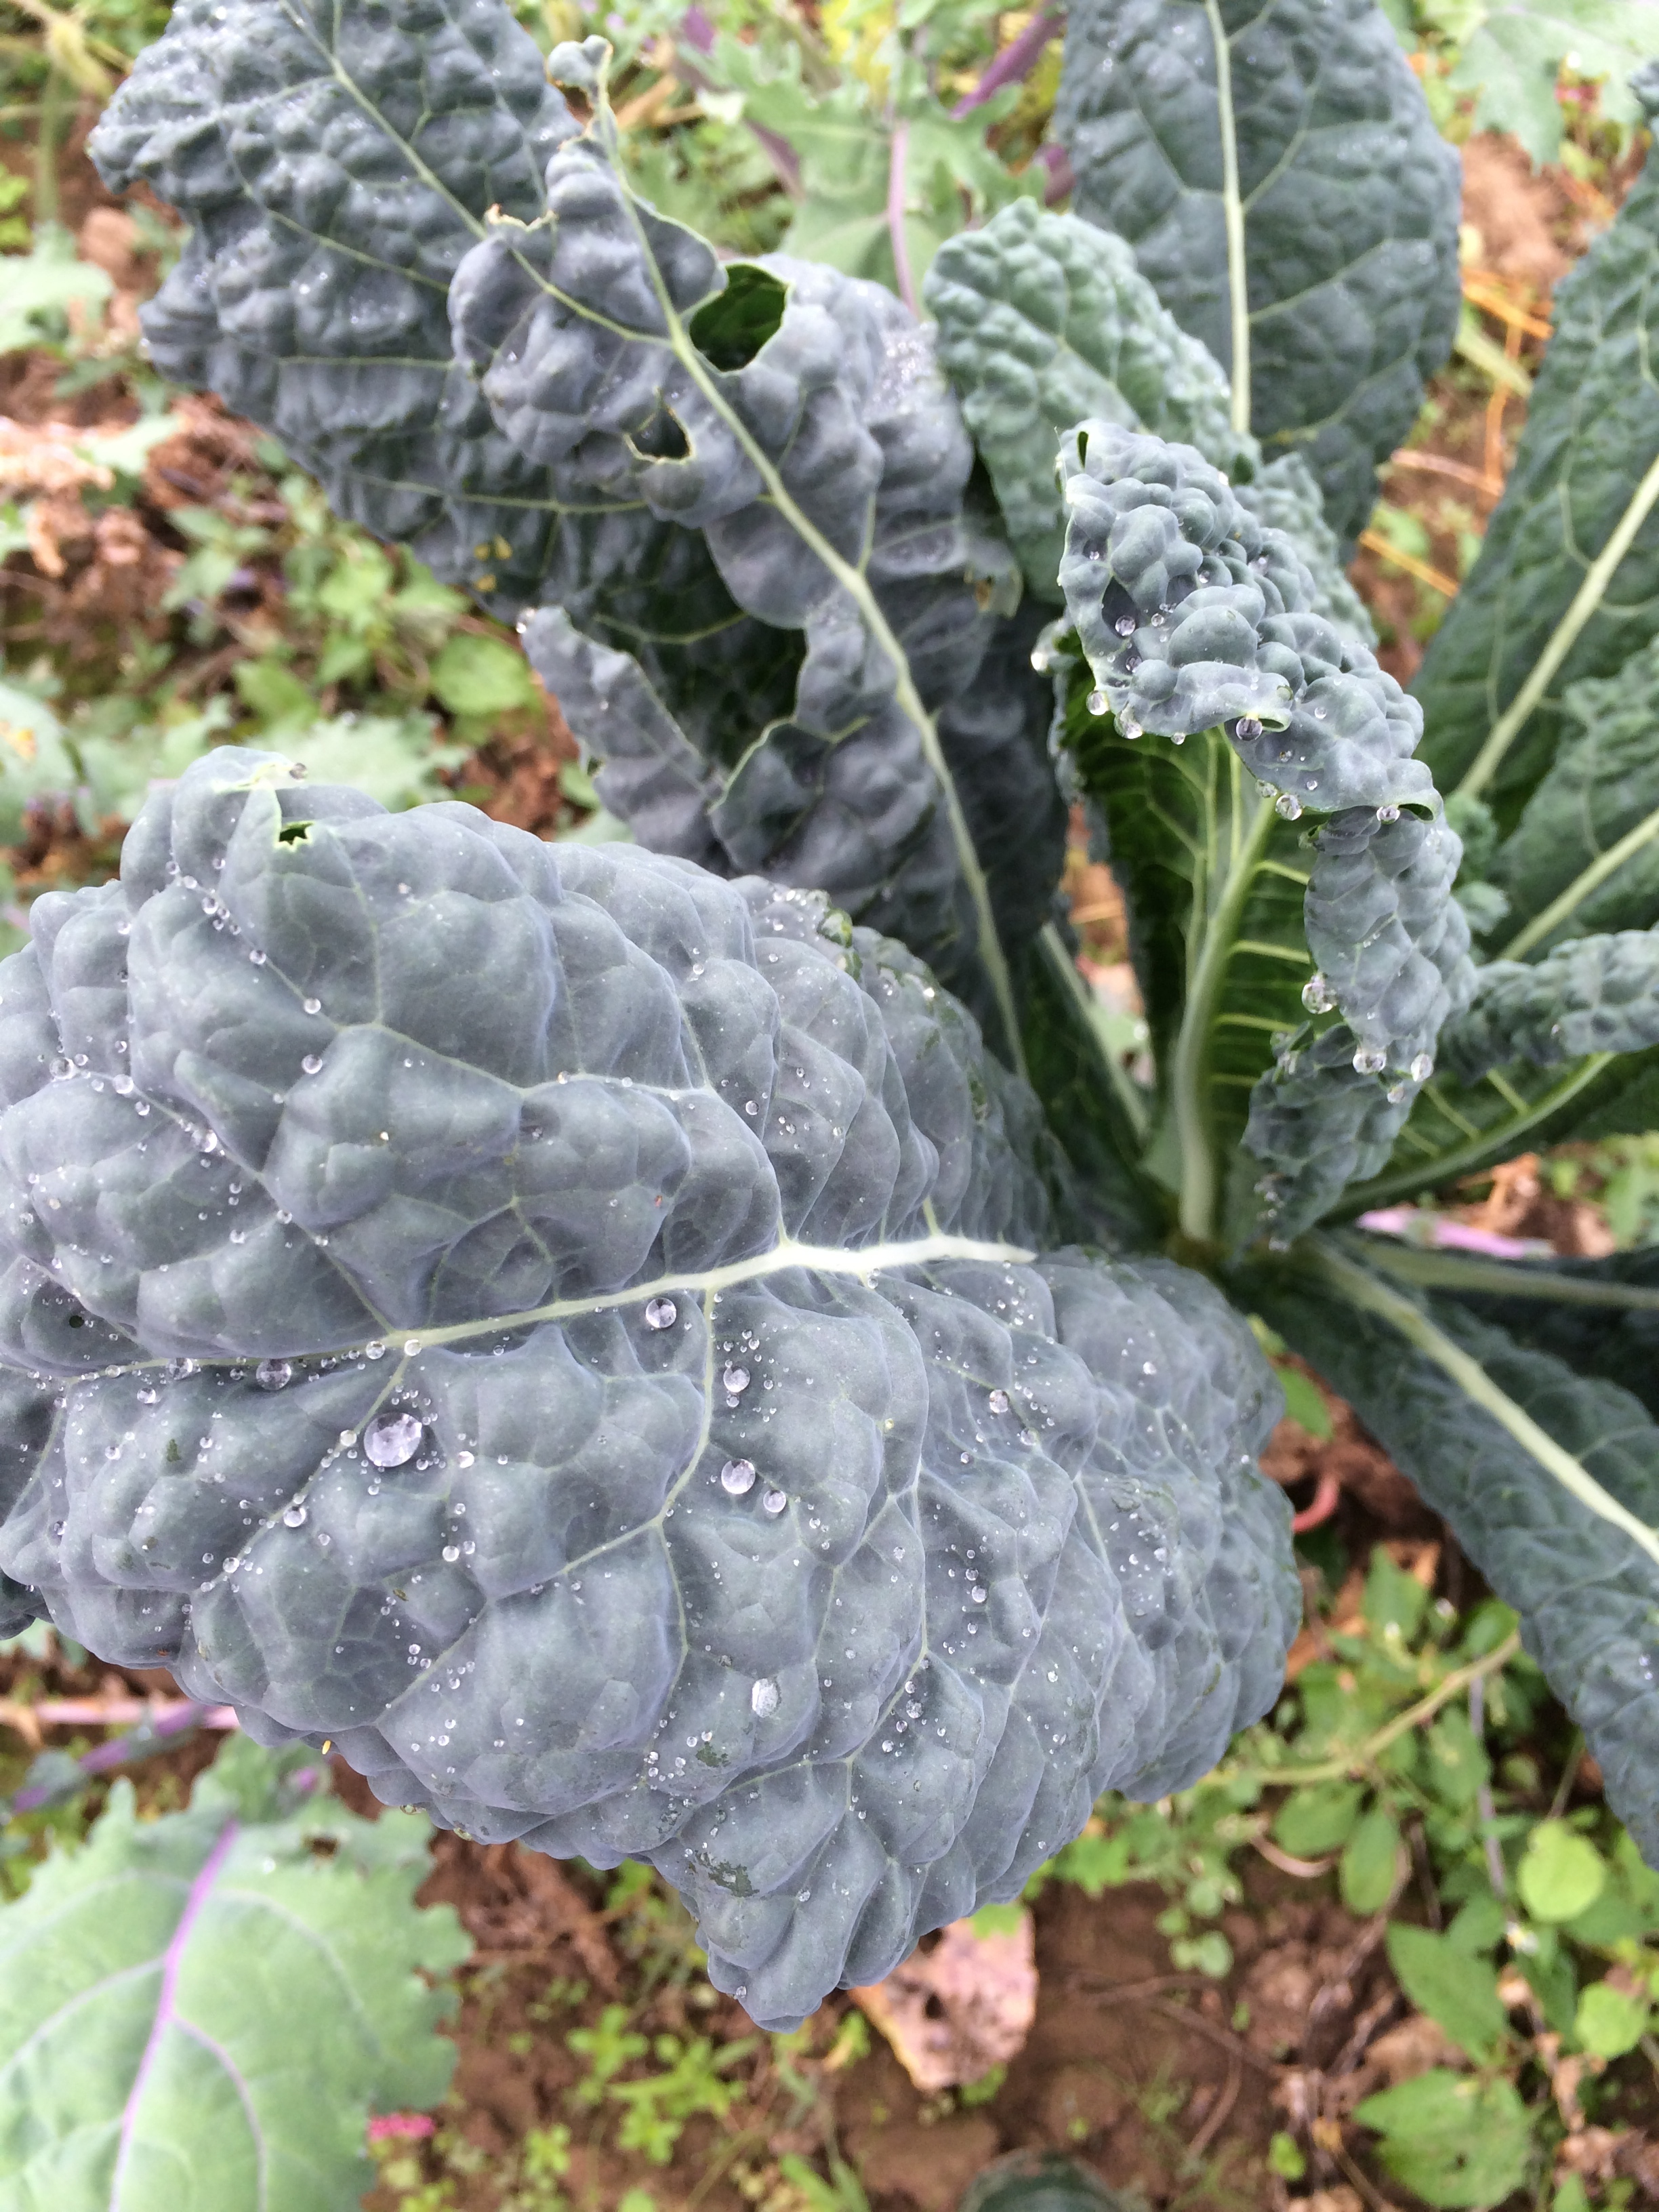 Tuscano kale, waiting to be picked by our crew